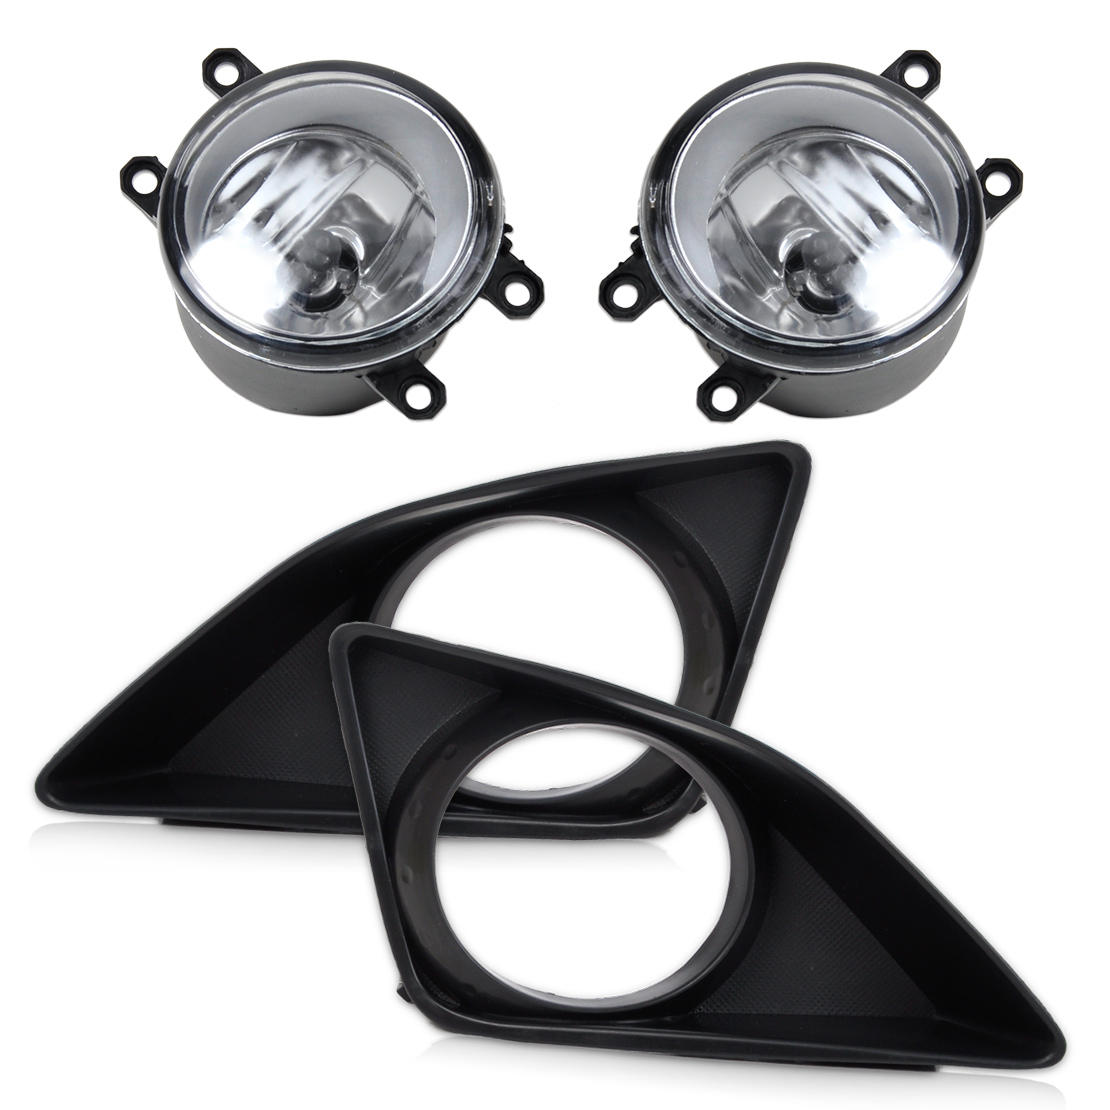 CITALL 4Pcs Front Right Left Fog Light Lamp + Grille Cover Bezel for Toyota Corolla 2007 2008 2009 2010 casio mtp sw310l 2a